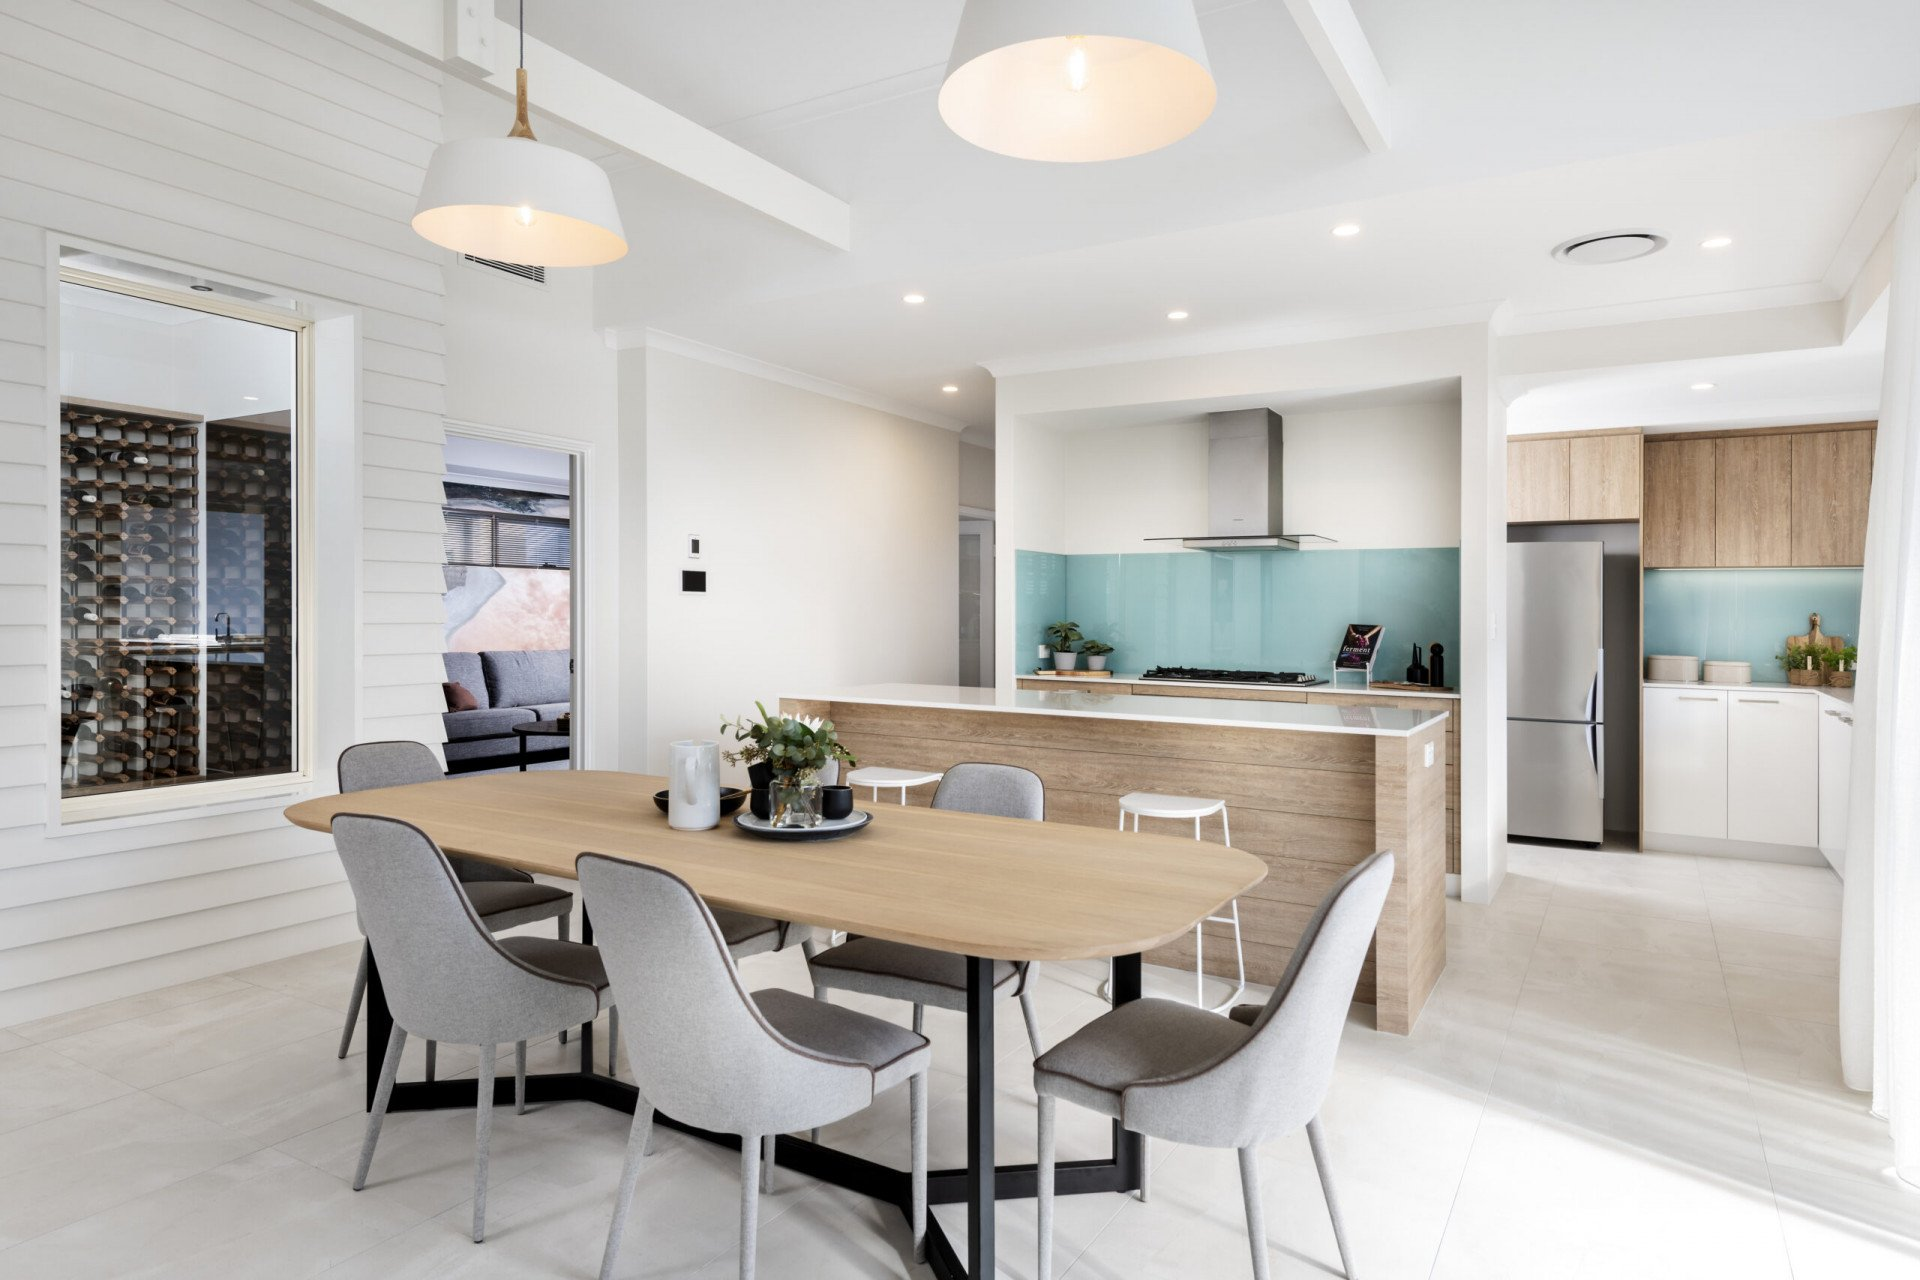 Dining-Kitchen-2-1-scaled